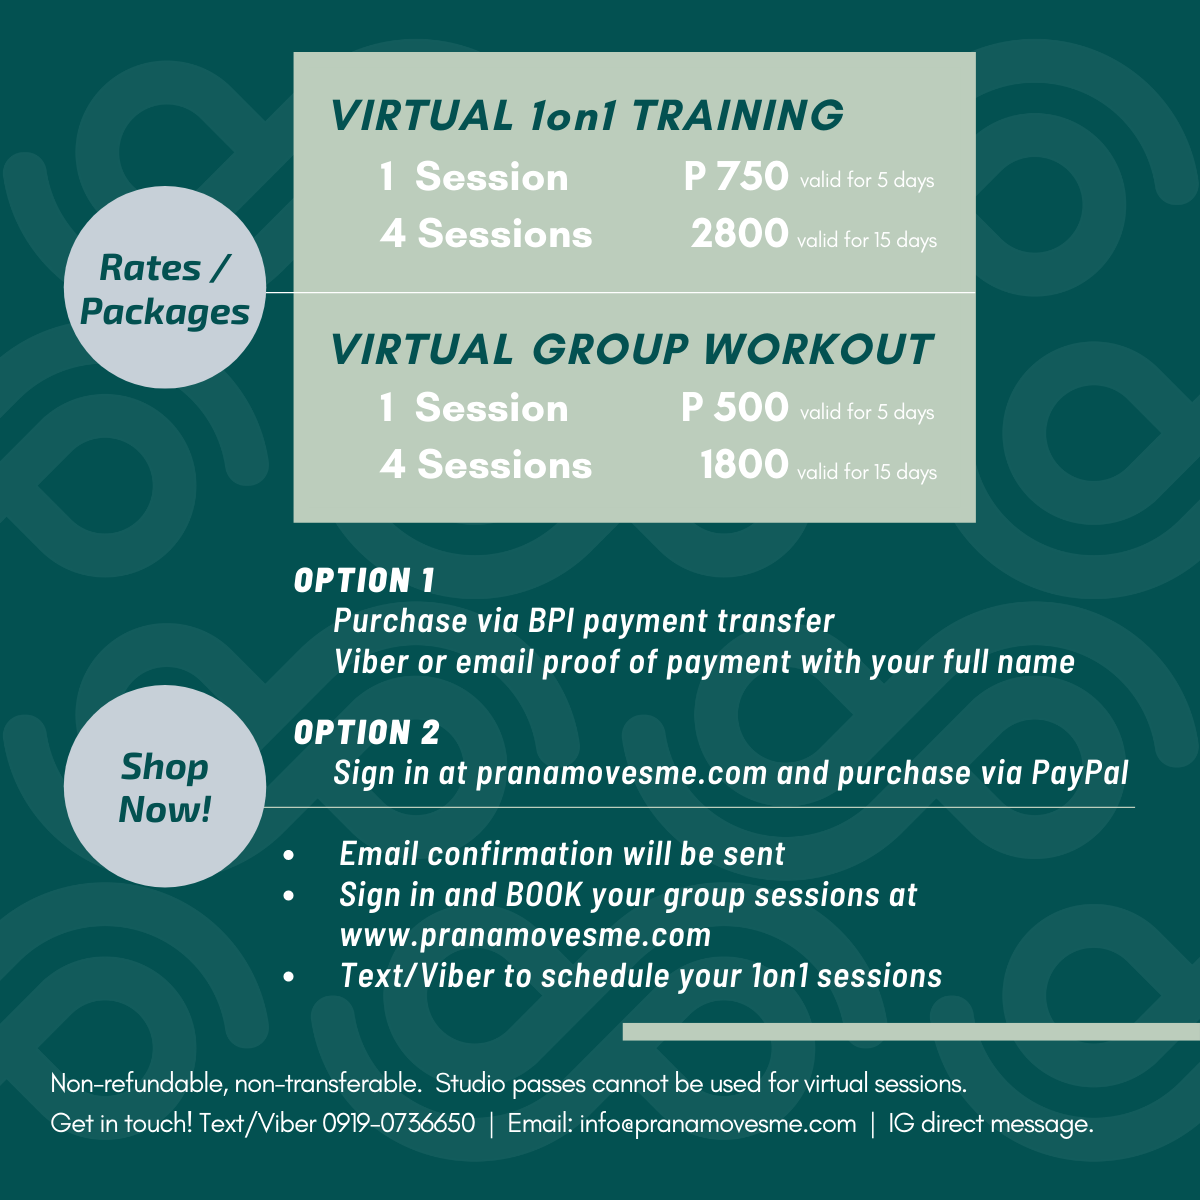 Virtual 1 on 1 Training